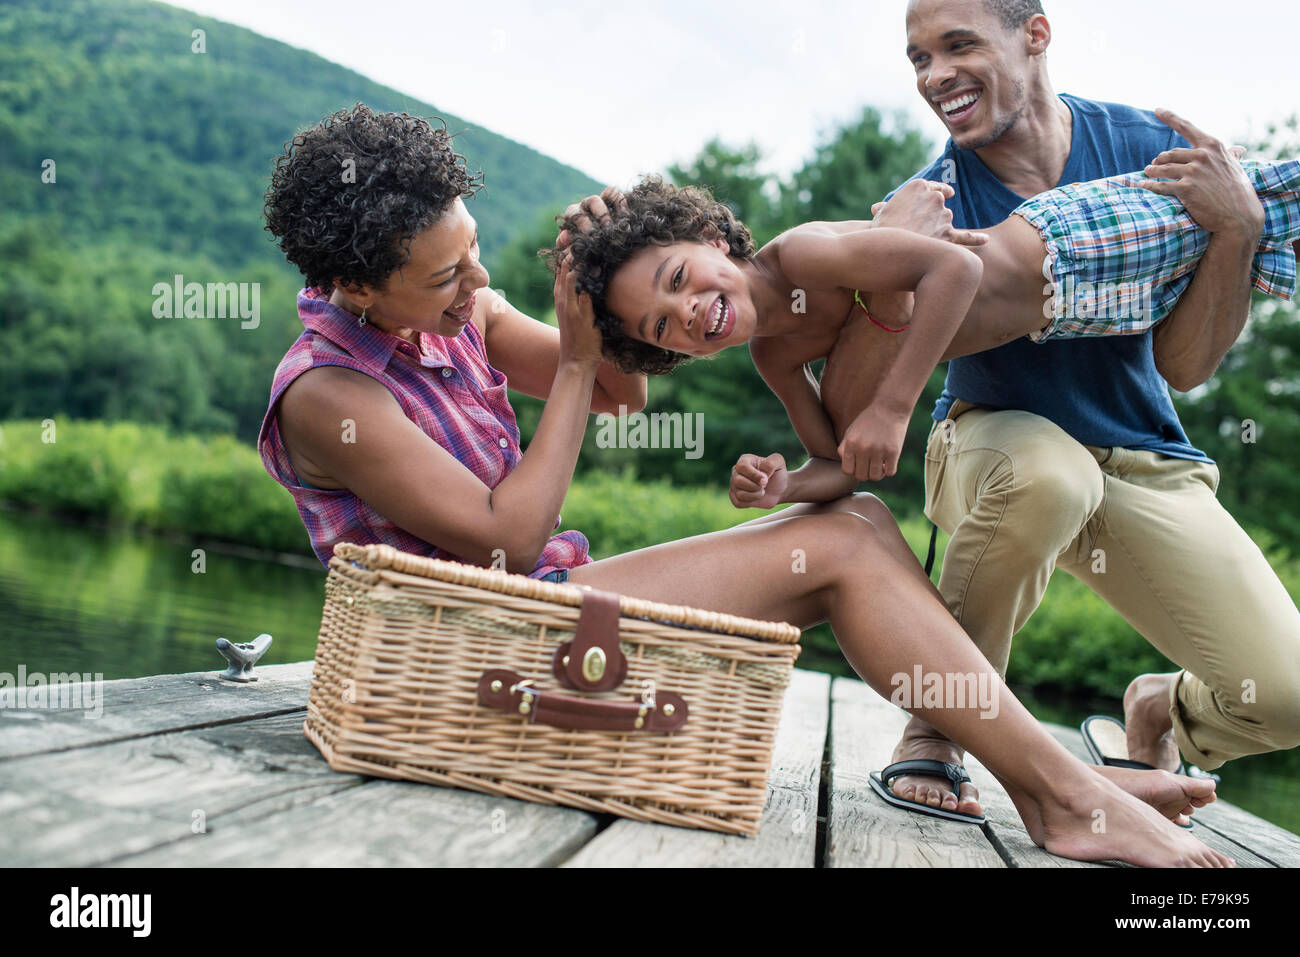 A family having a summer picnic at a lake. - Stock Image